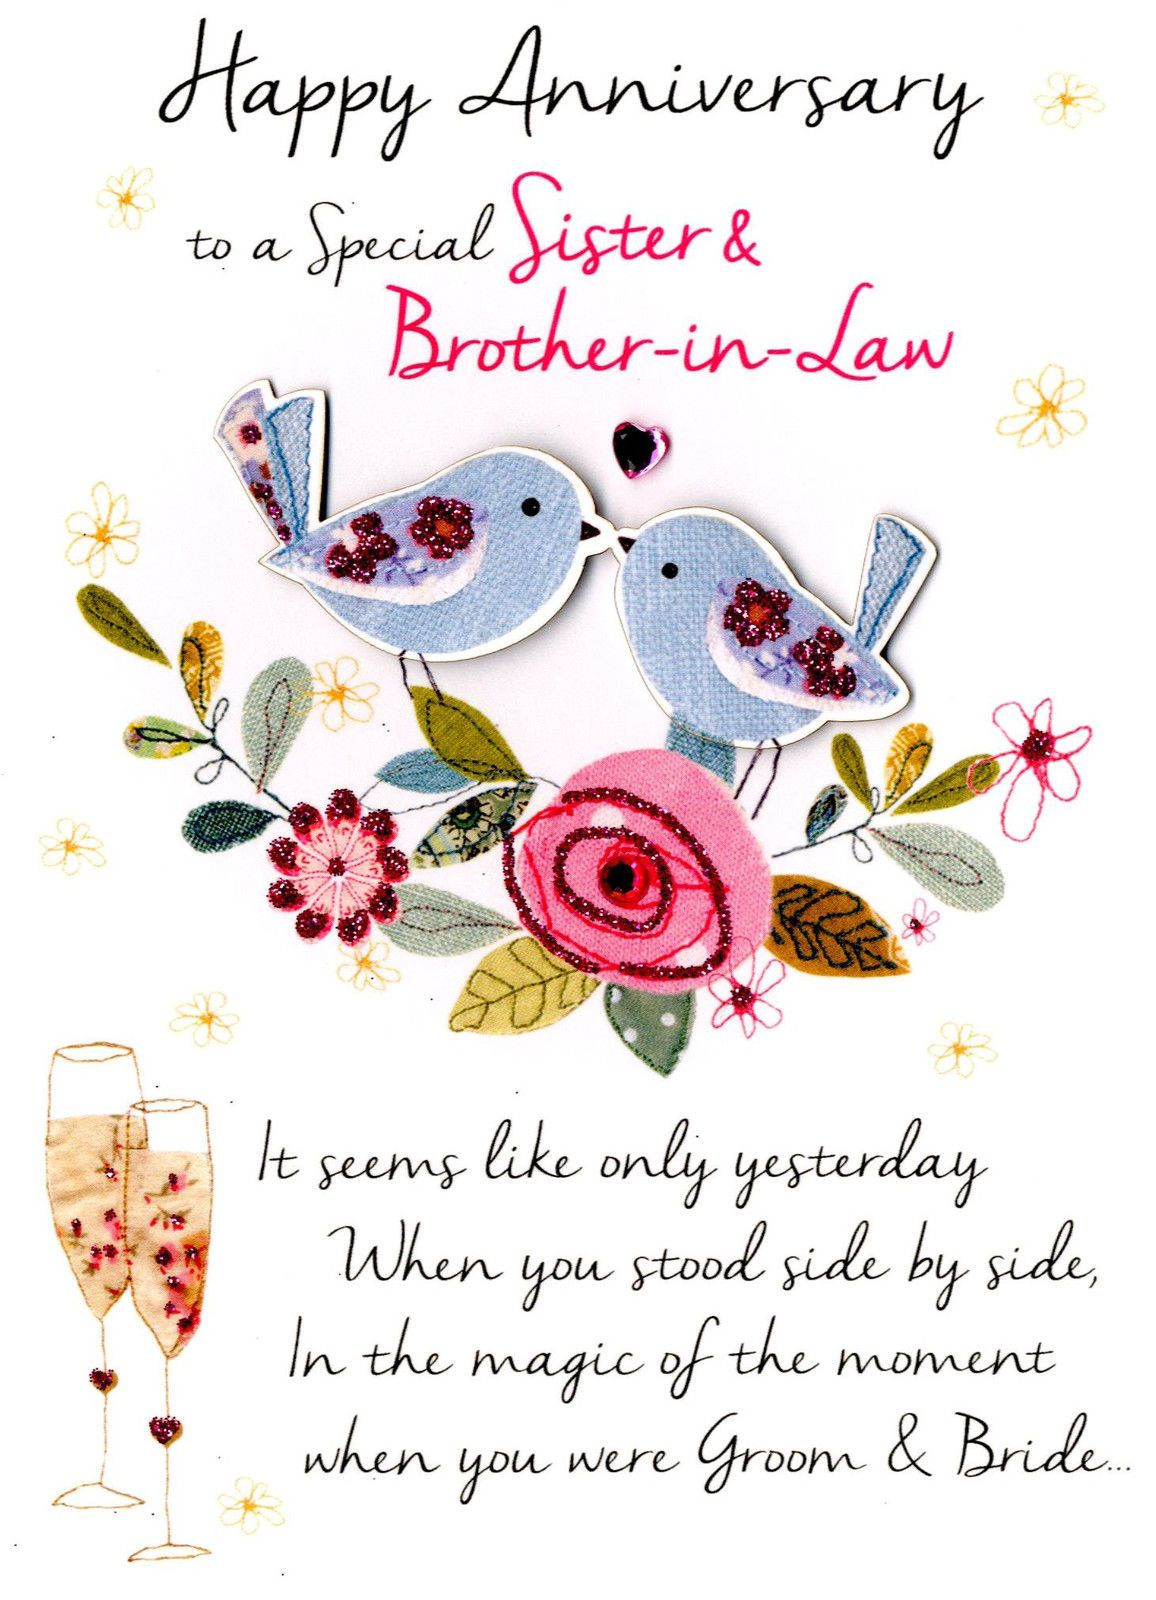 25th Anniversary Quotes For Brother And Sister In Law Inspiring Quotes